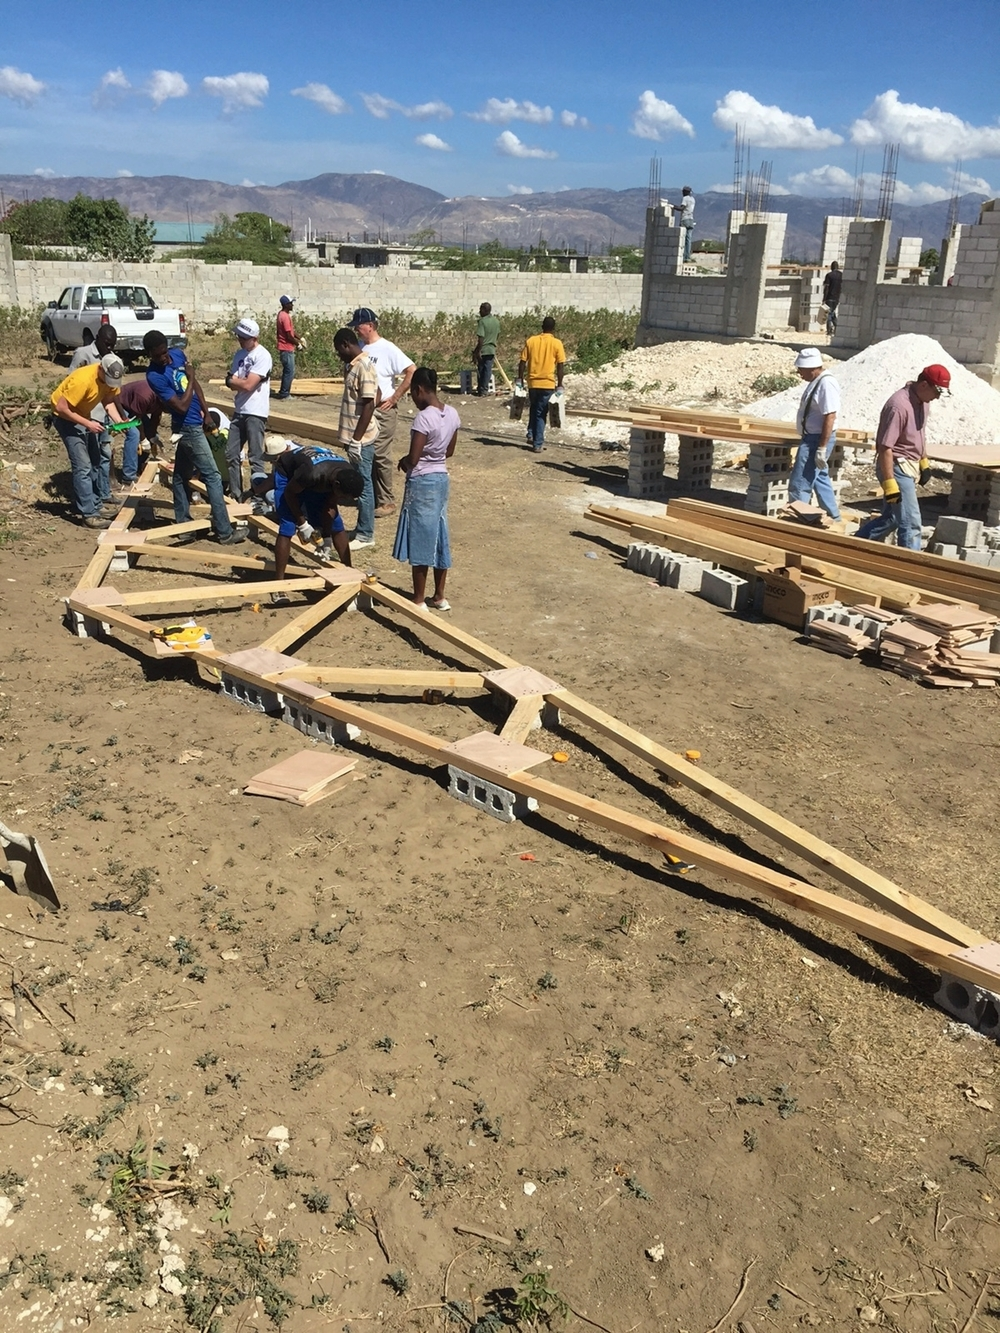 The truss forming area of the worksite with the church building in the background